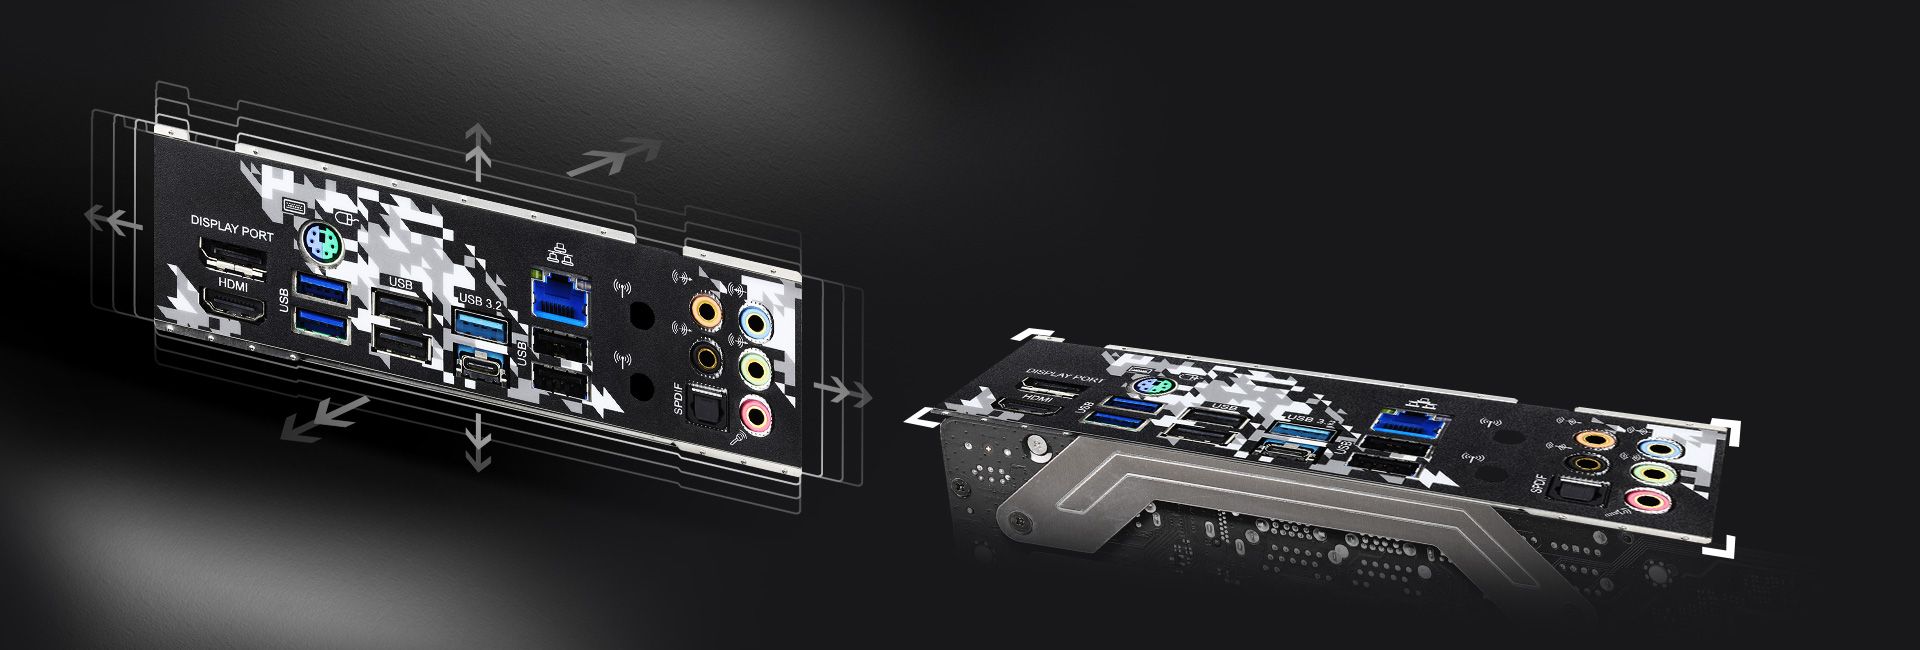 Integrated I/O of the motherboard